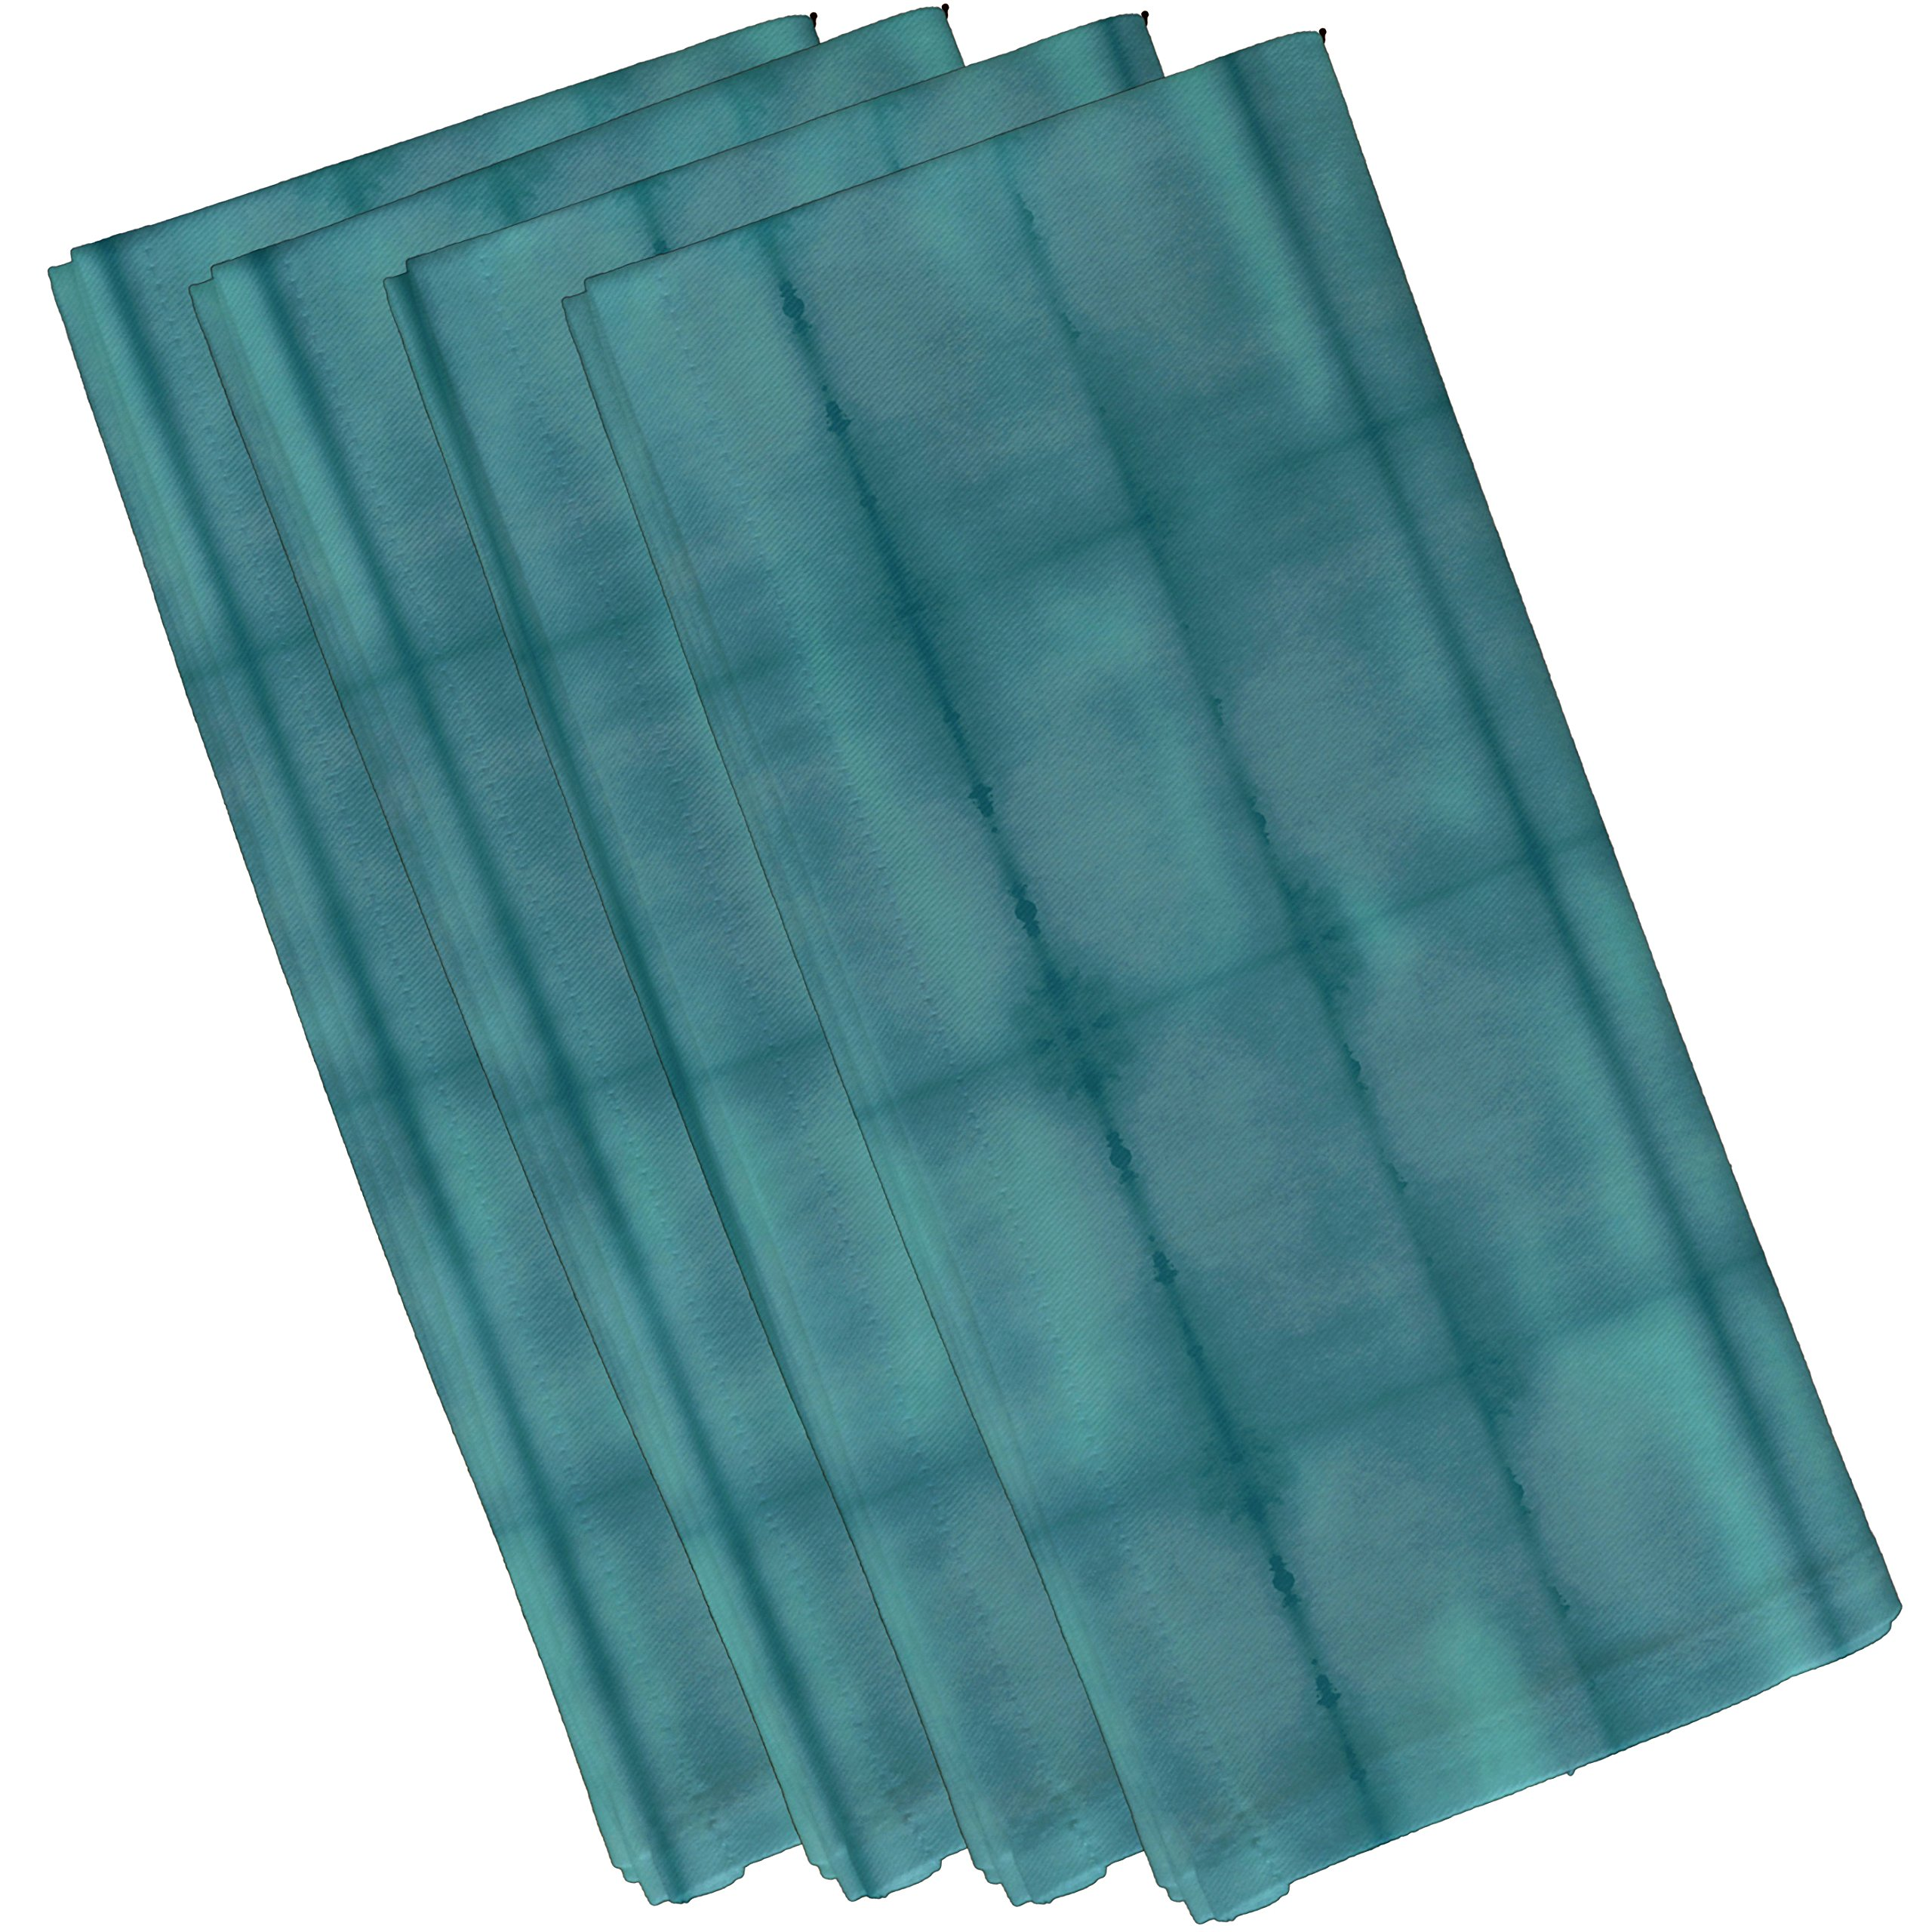 E by design N4S777BL37 Pool Stripe Print Napkin (Set of 4), 19'' x 19'', Teal